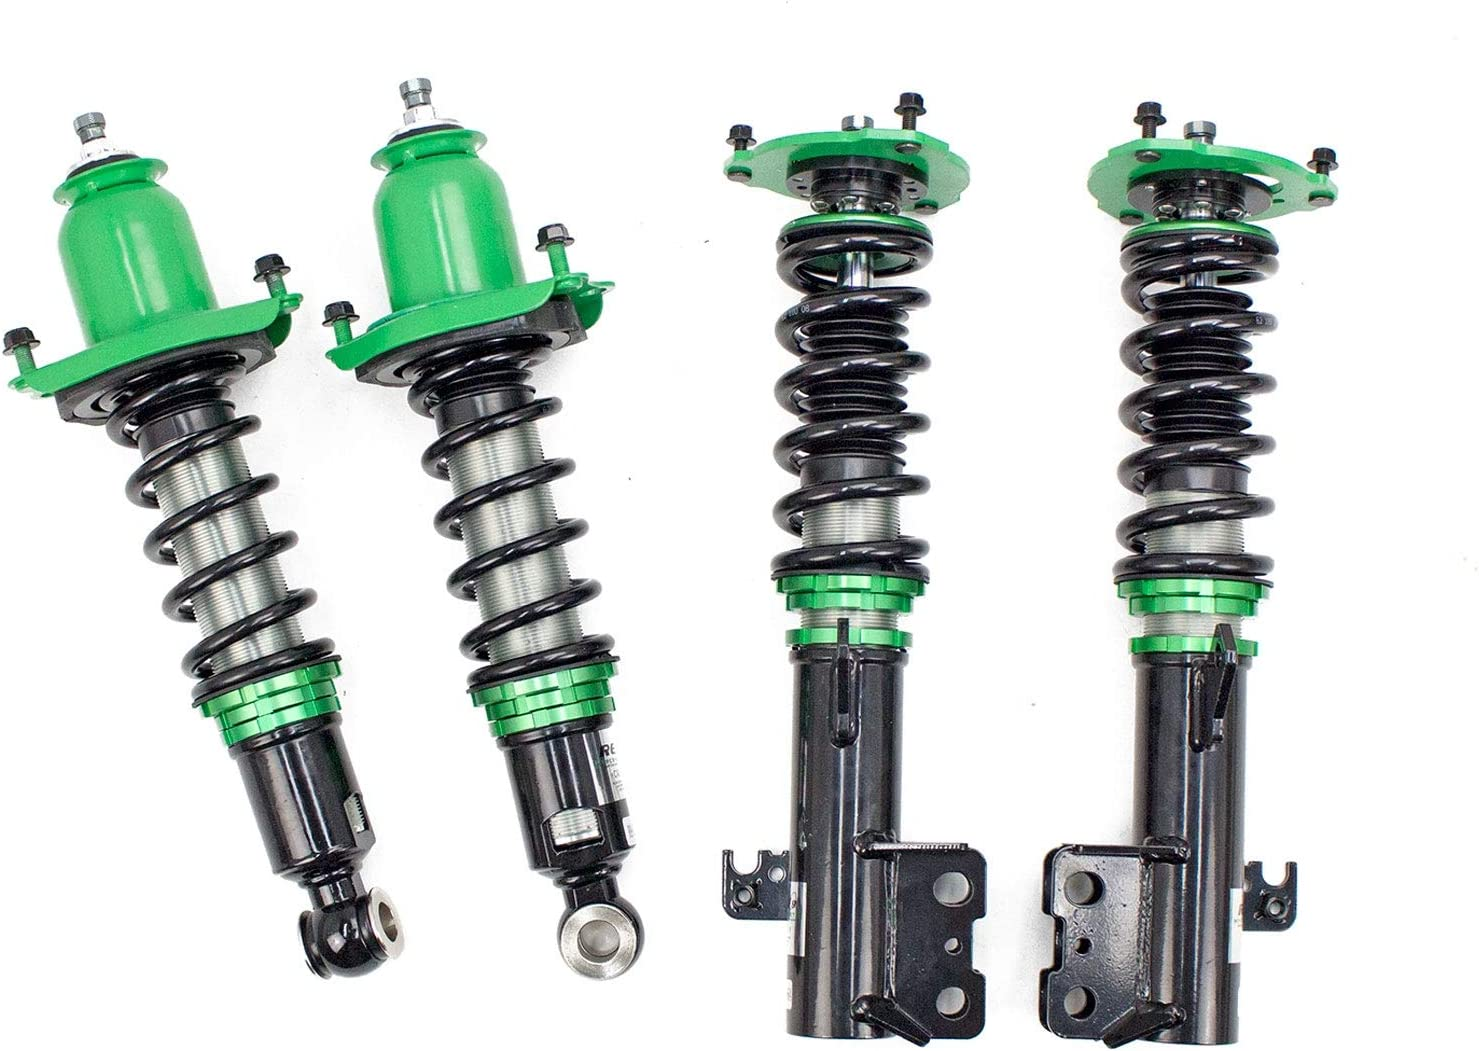 XX30 R9-HS2-052/_2 made for Toyota Avalon 2006-12 Hyper-Street II Coilovers Lowering Kit by Rev9 32 Damping Level Adjustment